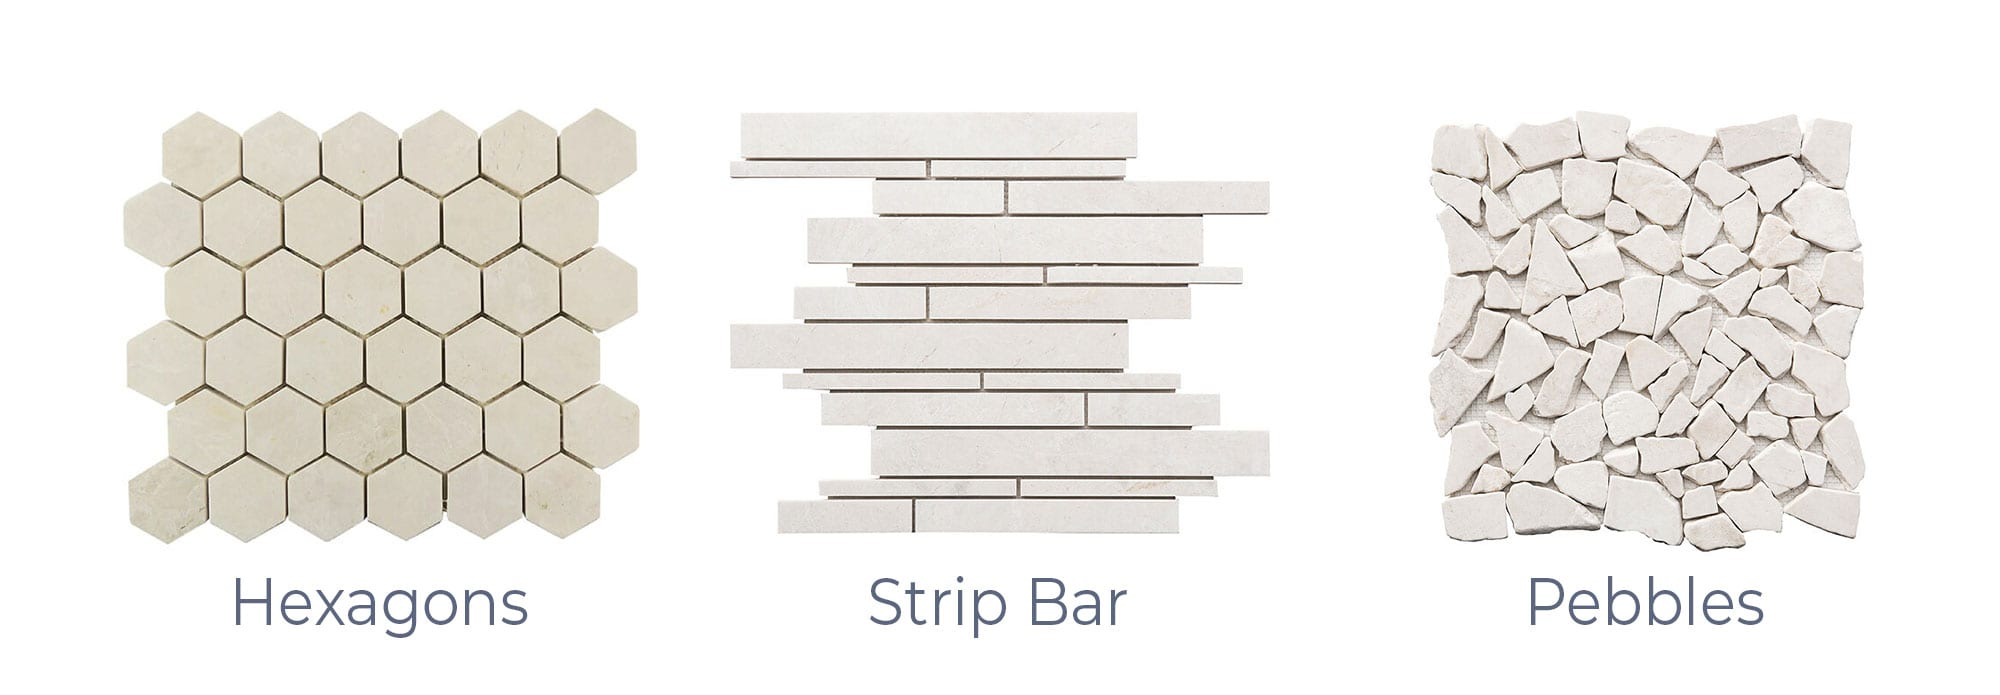 Stoneline-Group-French-Vanilla-Marble-Collection-Marble-Mosaic-Hexagons-Strip-Bars-Pebbles-Pictures-d